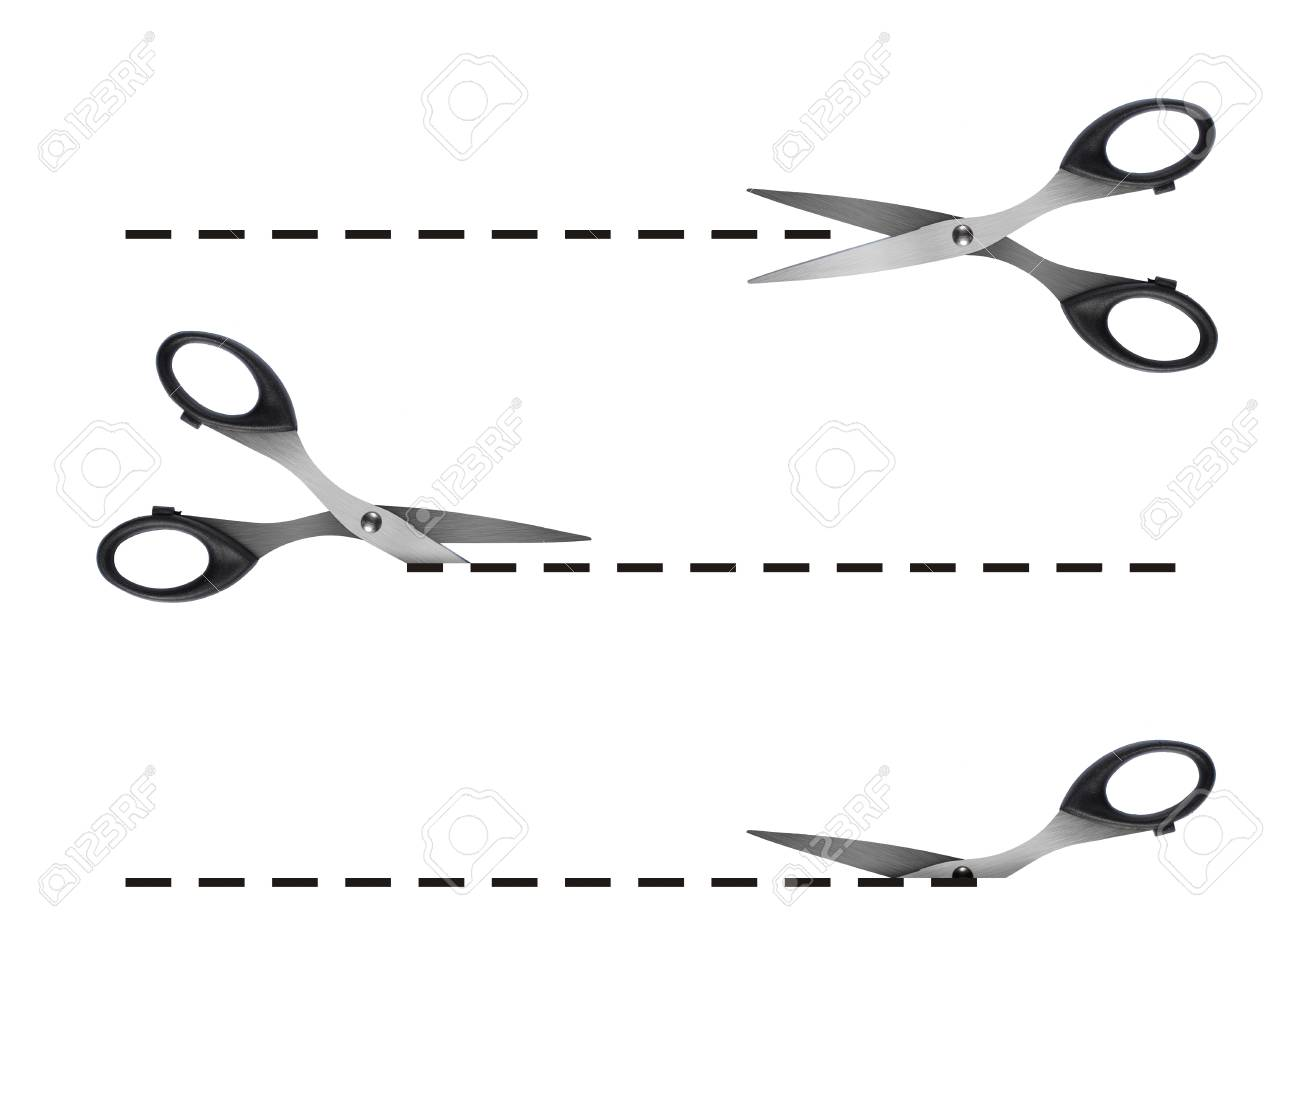 scissors cutting black dashed lines Stock Photo - 9093478